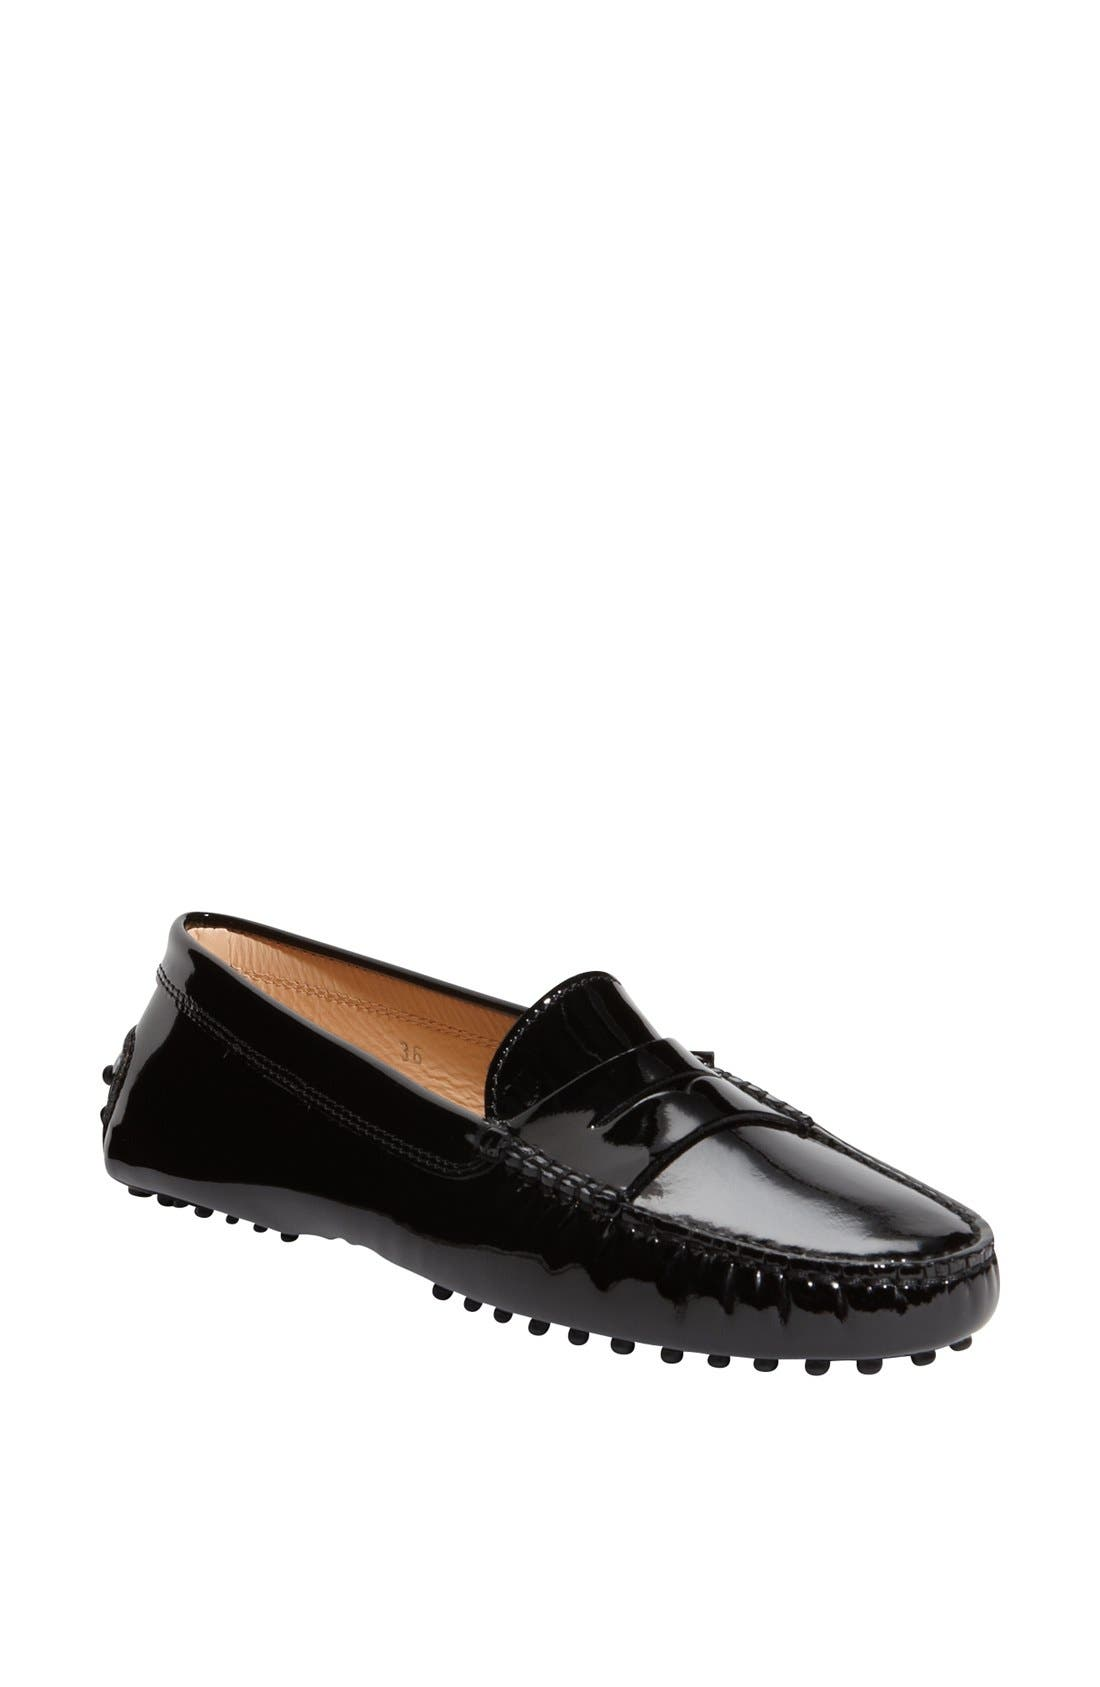 TODS Gommini Moccasin